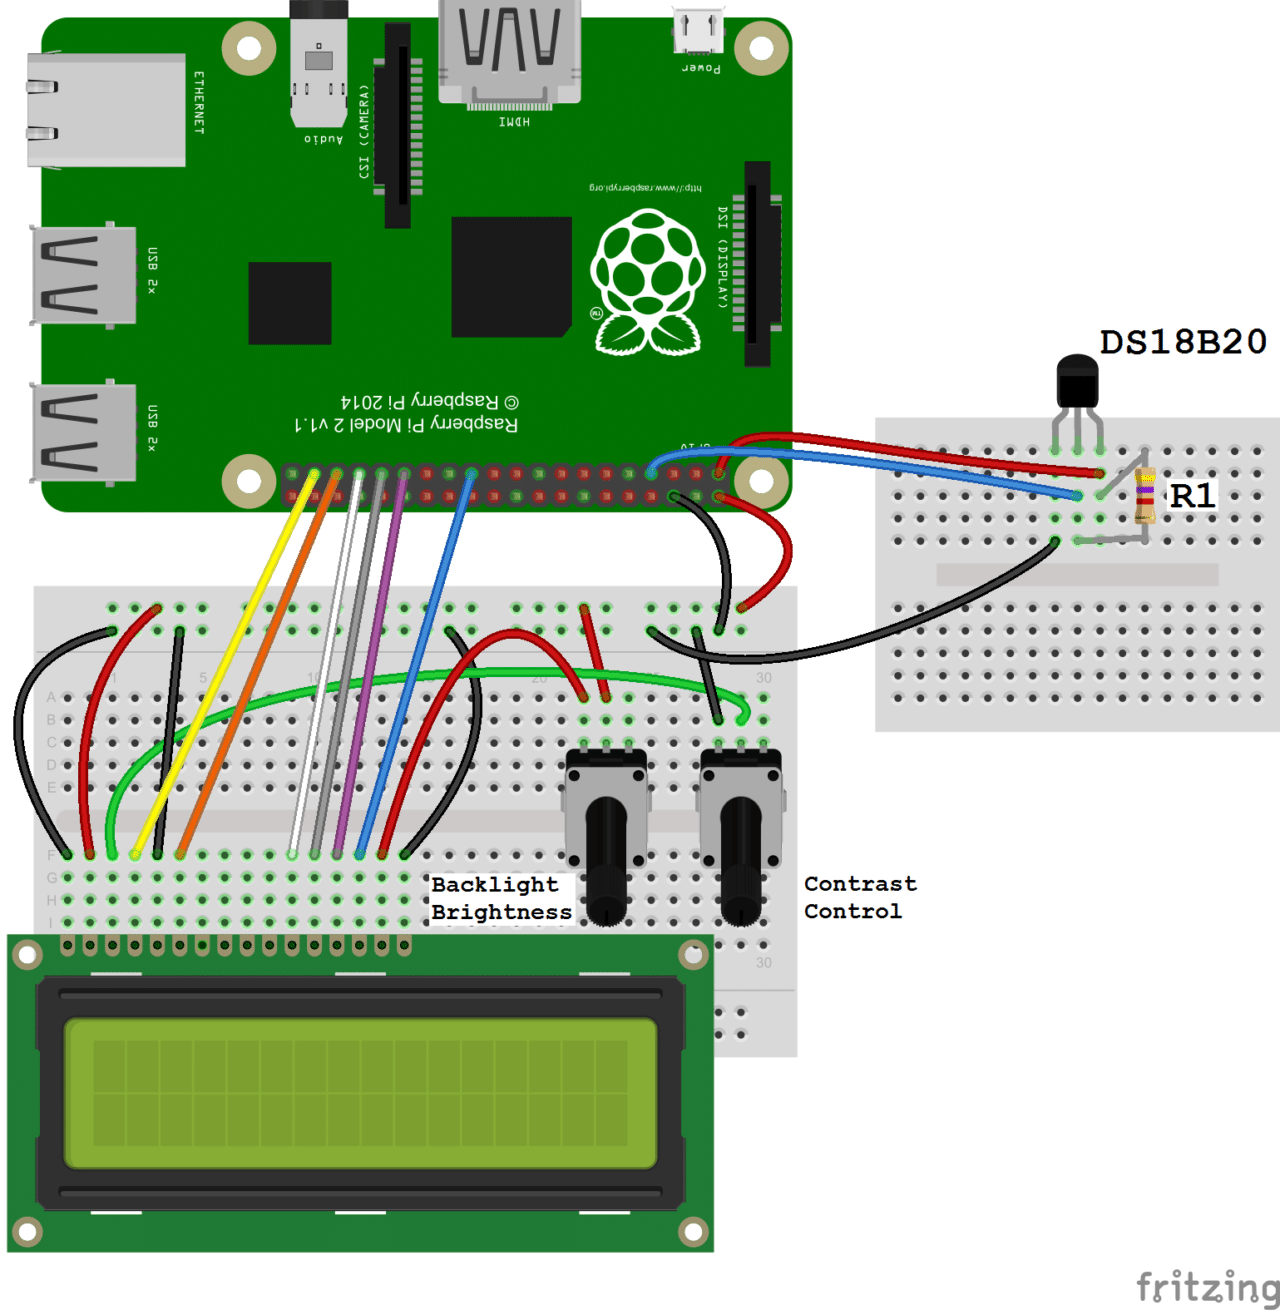 Raspberry Pi Ds18b20 Temperature Sensor Tutorial Circuit Basics Lcd Wiring Diagram For Output